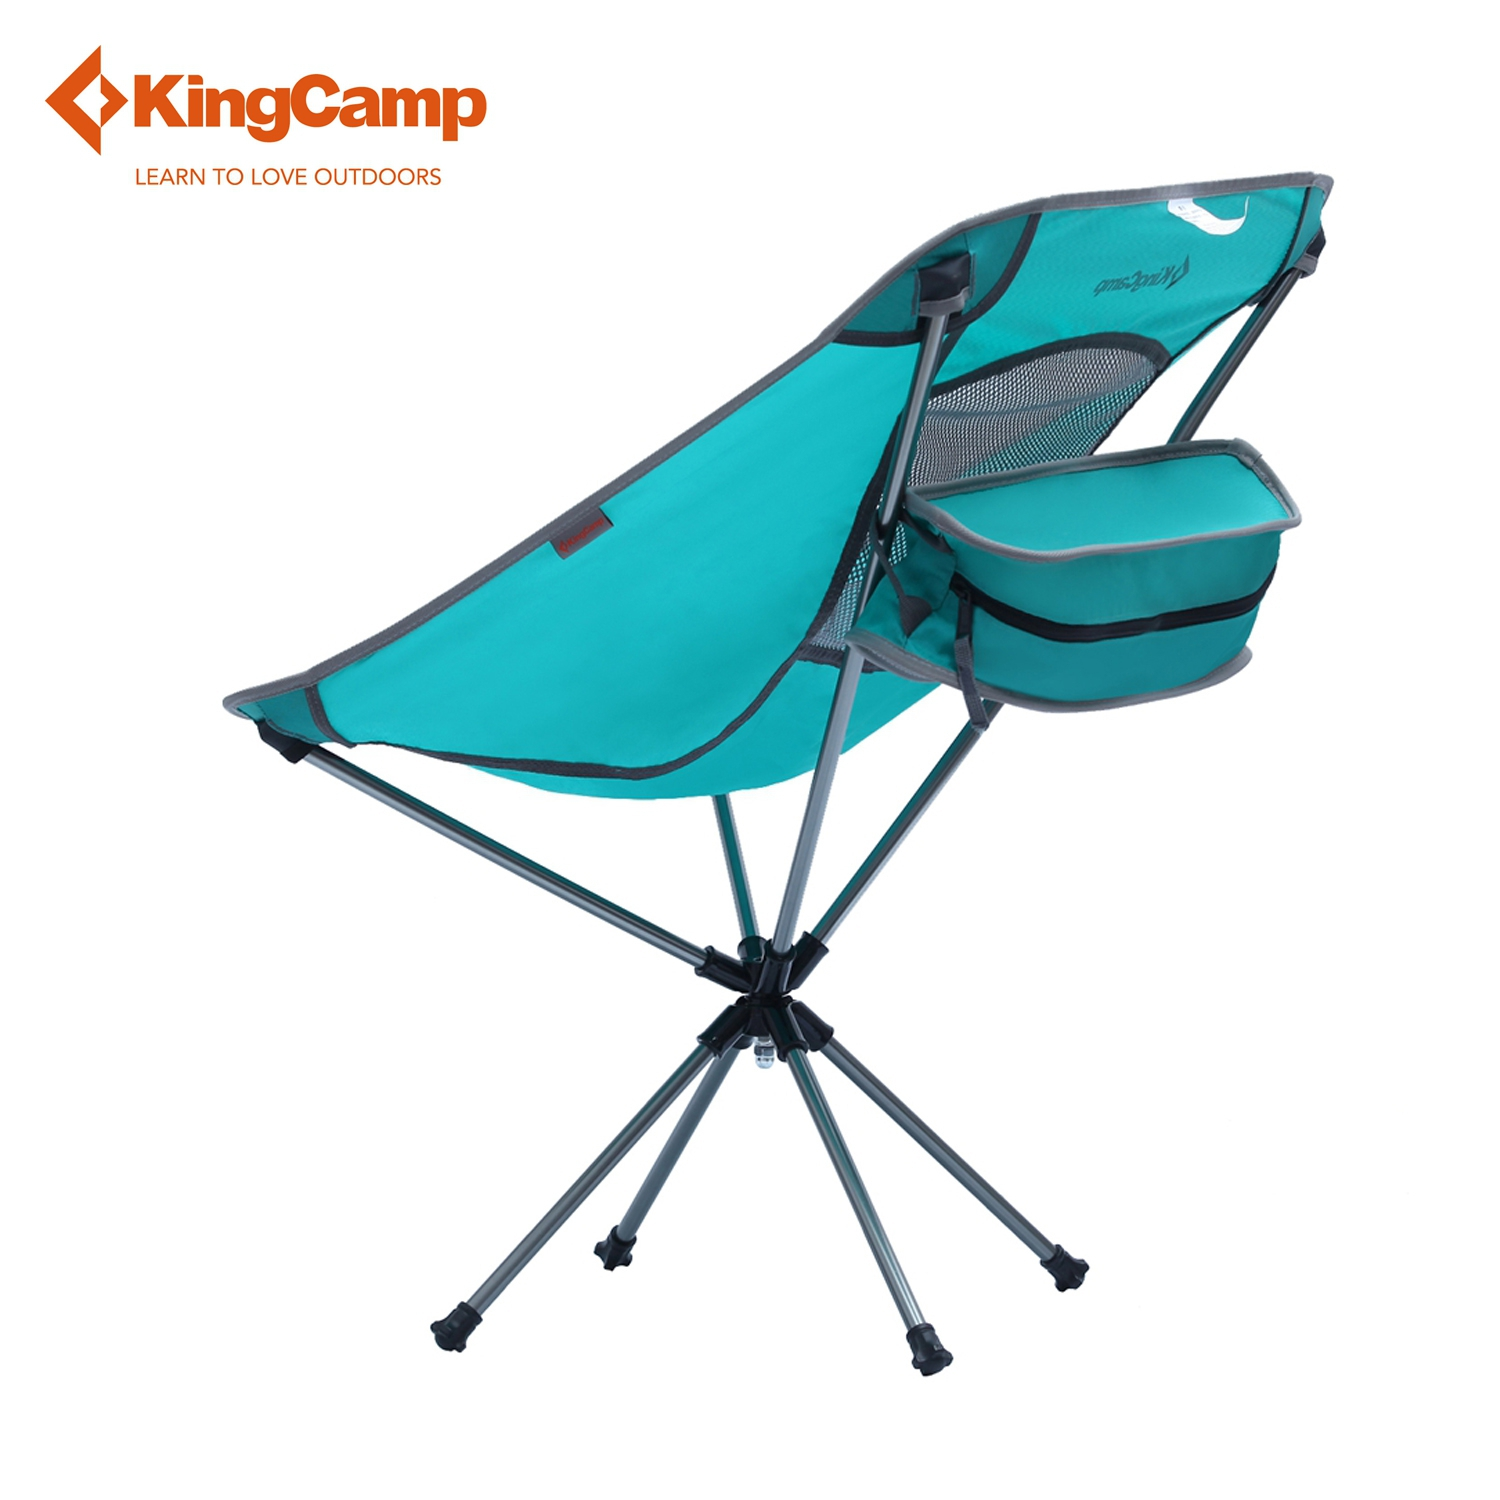 Buy Foldable Table Online Images Buy Foldable Table  : KingCamp Portable font b Ultralight b font Fishing font b Chair b font Outdoor Swivel Folding from www.favefaves.com size 1500 x 1500 jpeg 455kB